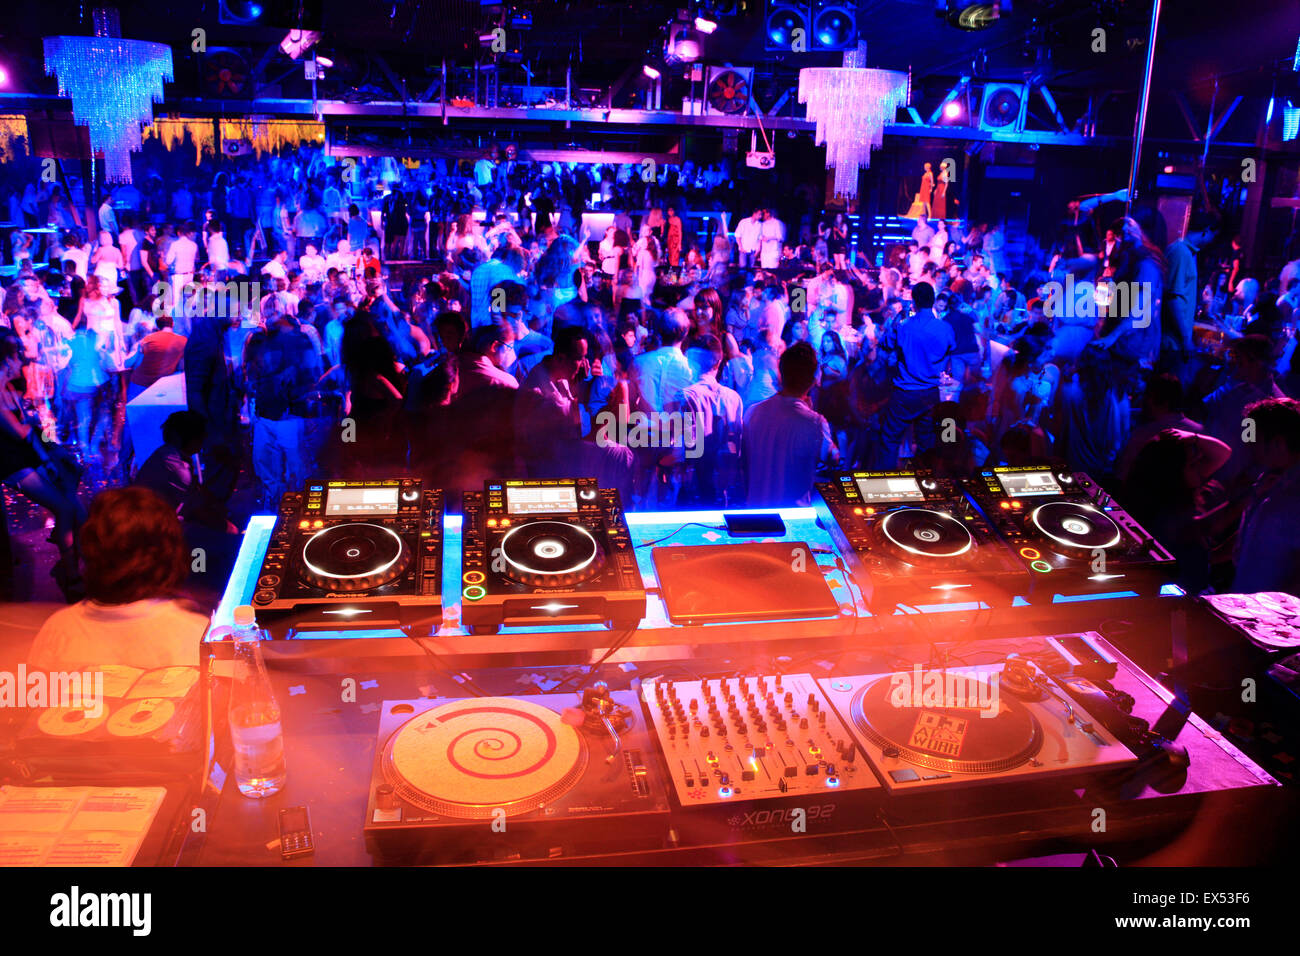 Colourful image of mixing console and decks playing music and jolified clubbers in the background. Athens nightclub, - Stock Image